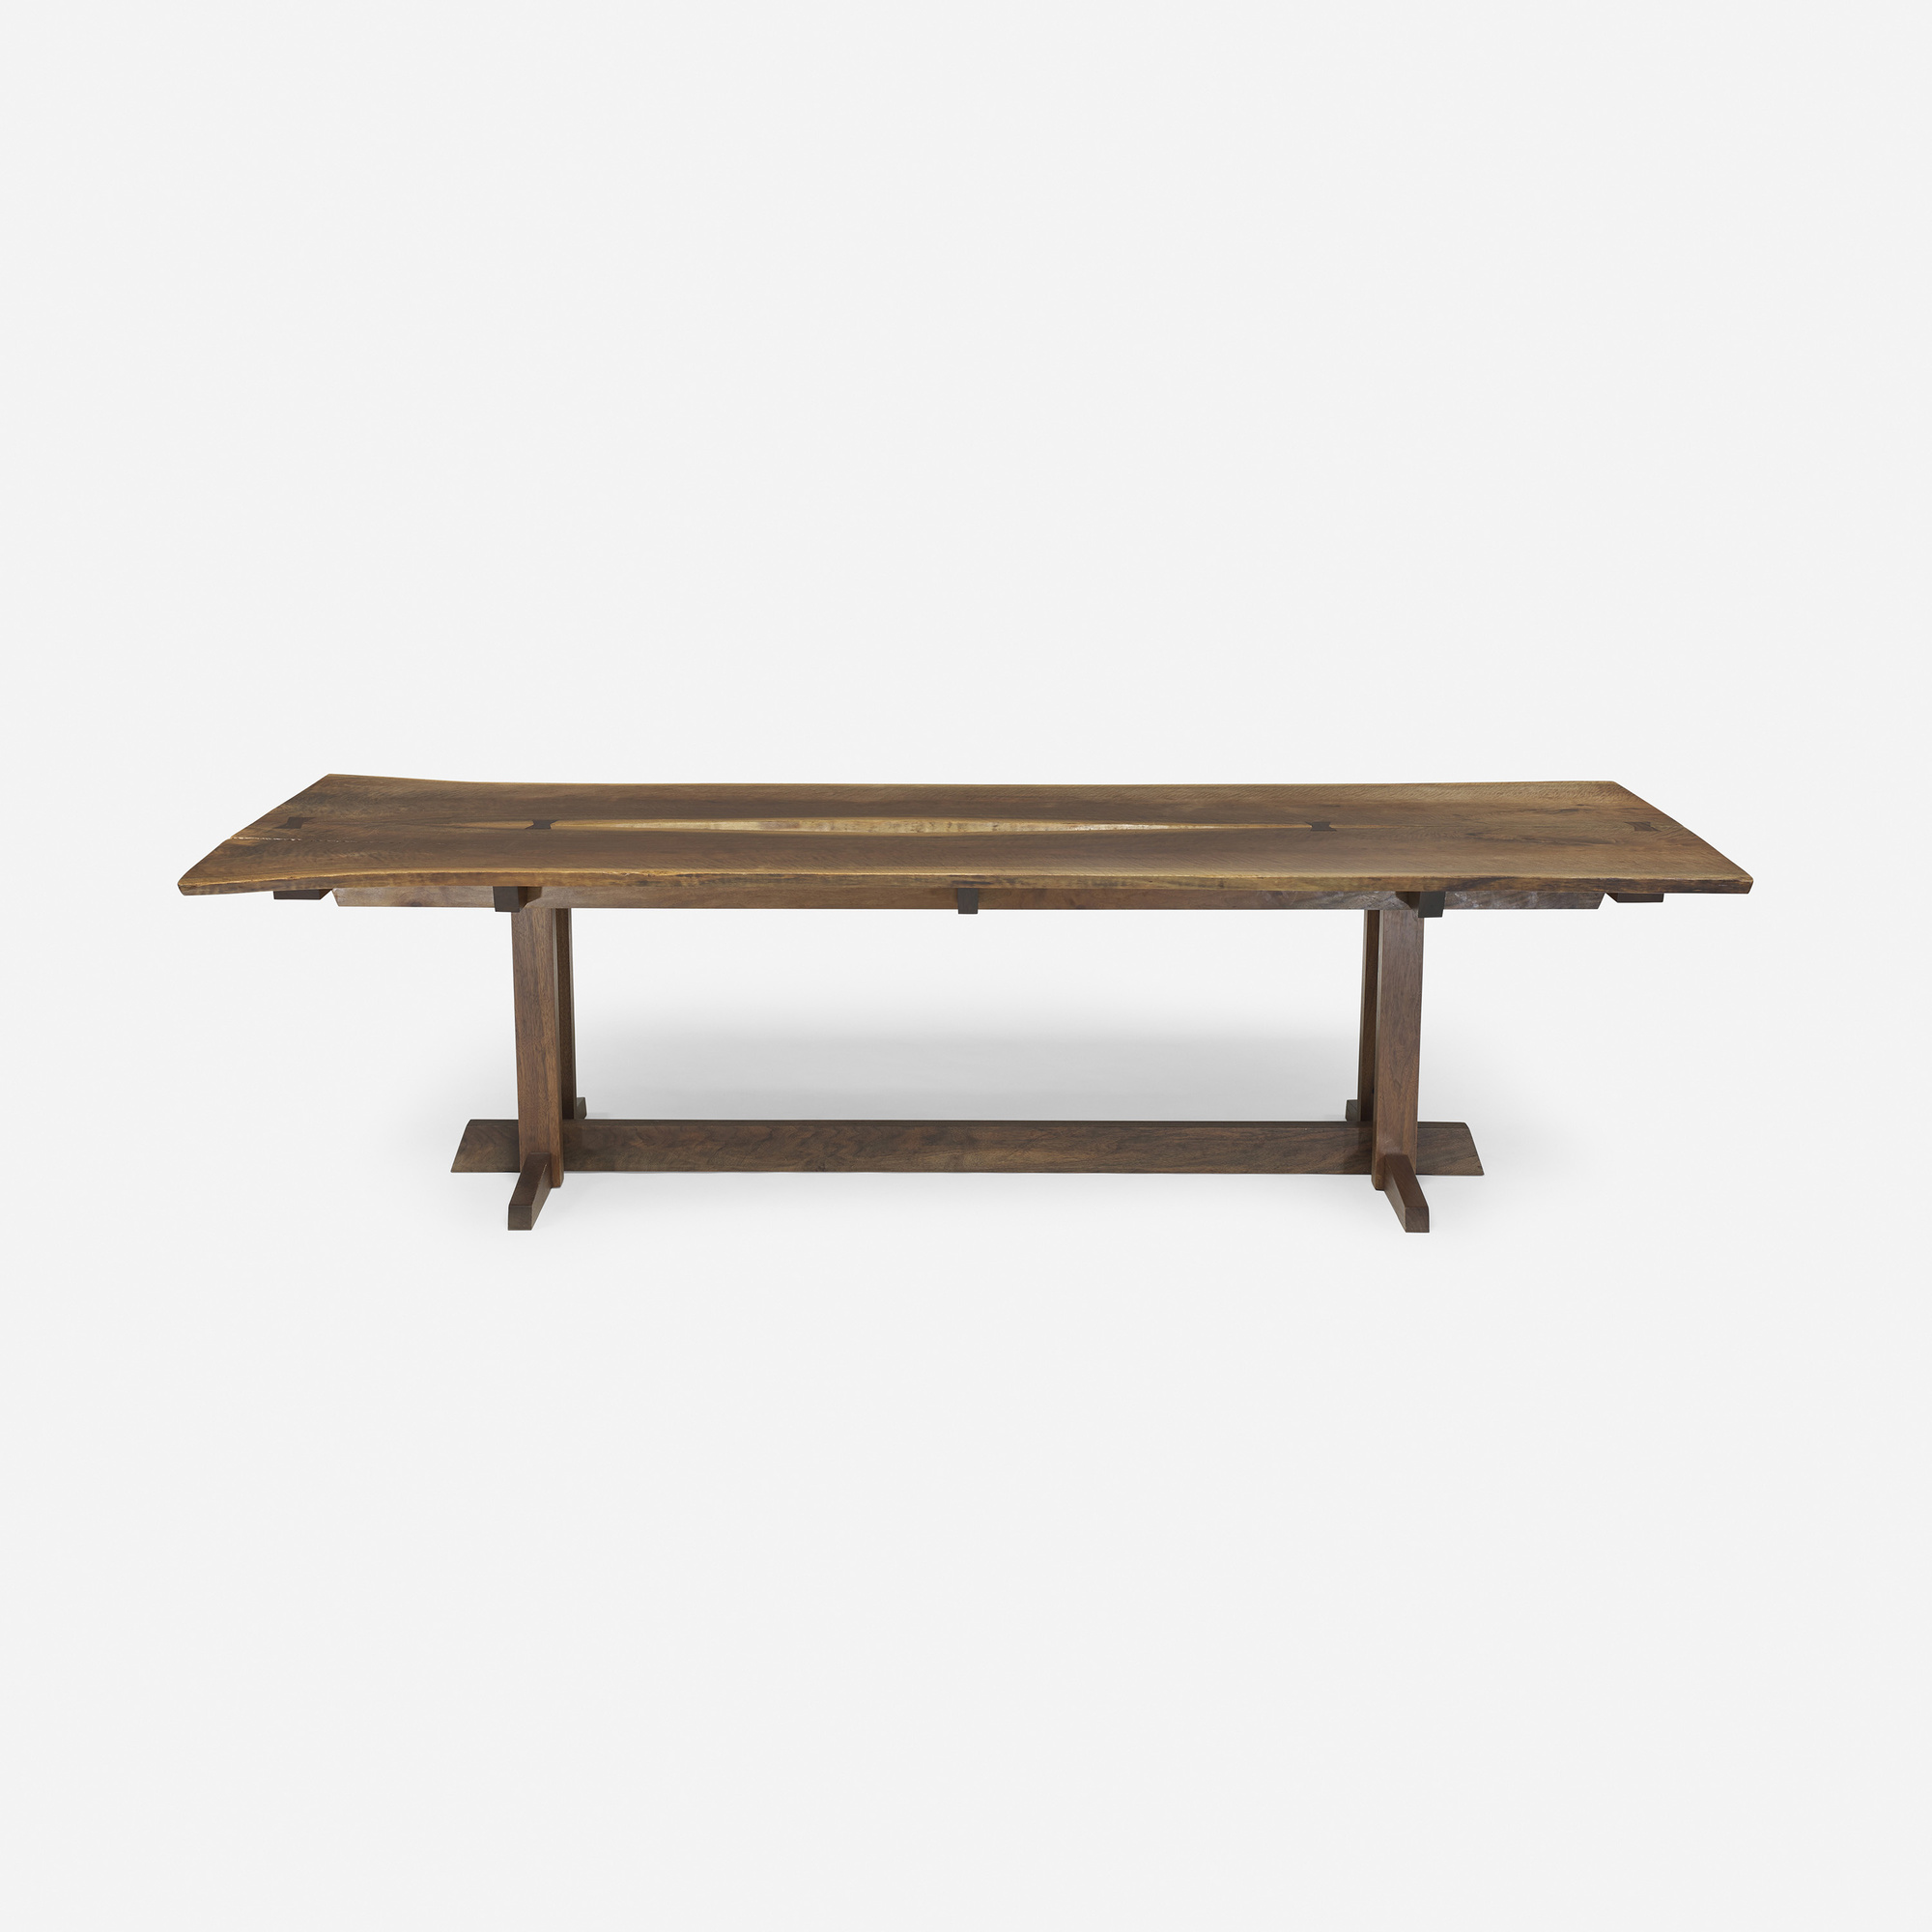 265 mira nakashima frenchman 39 s cove ii dining table for Dining table design 2015